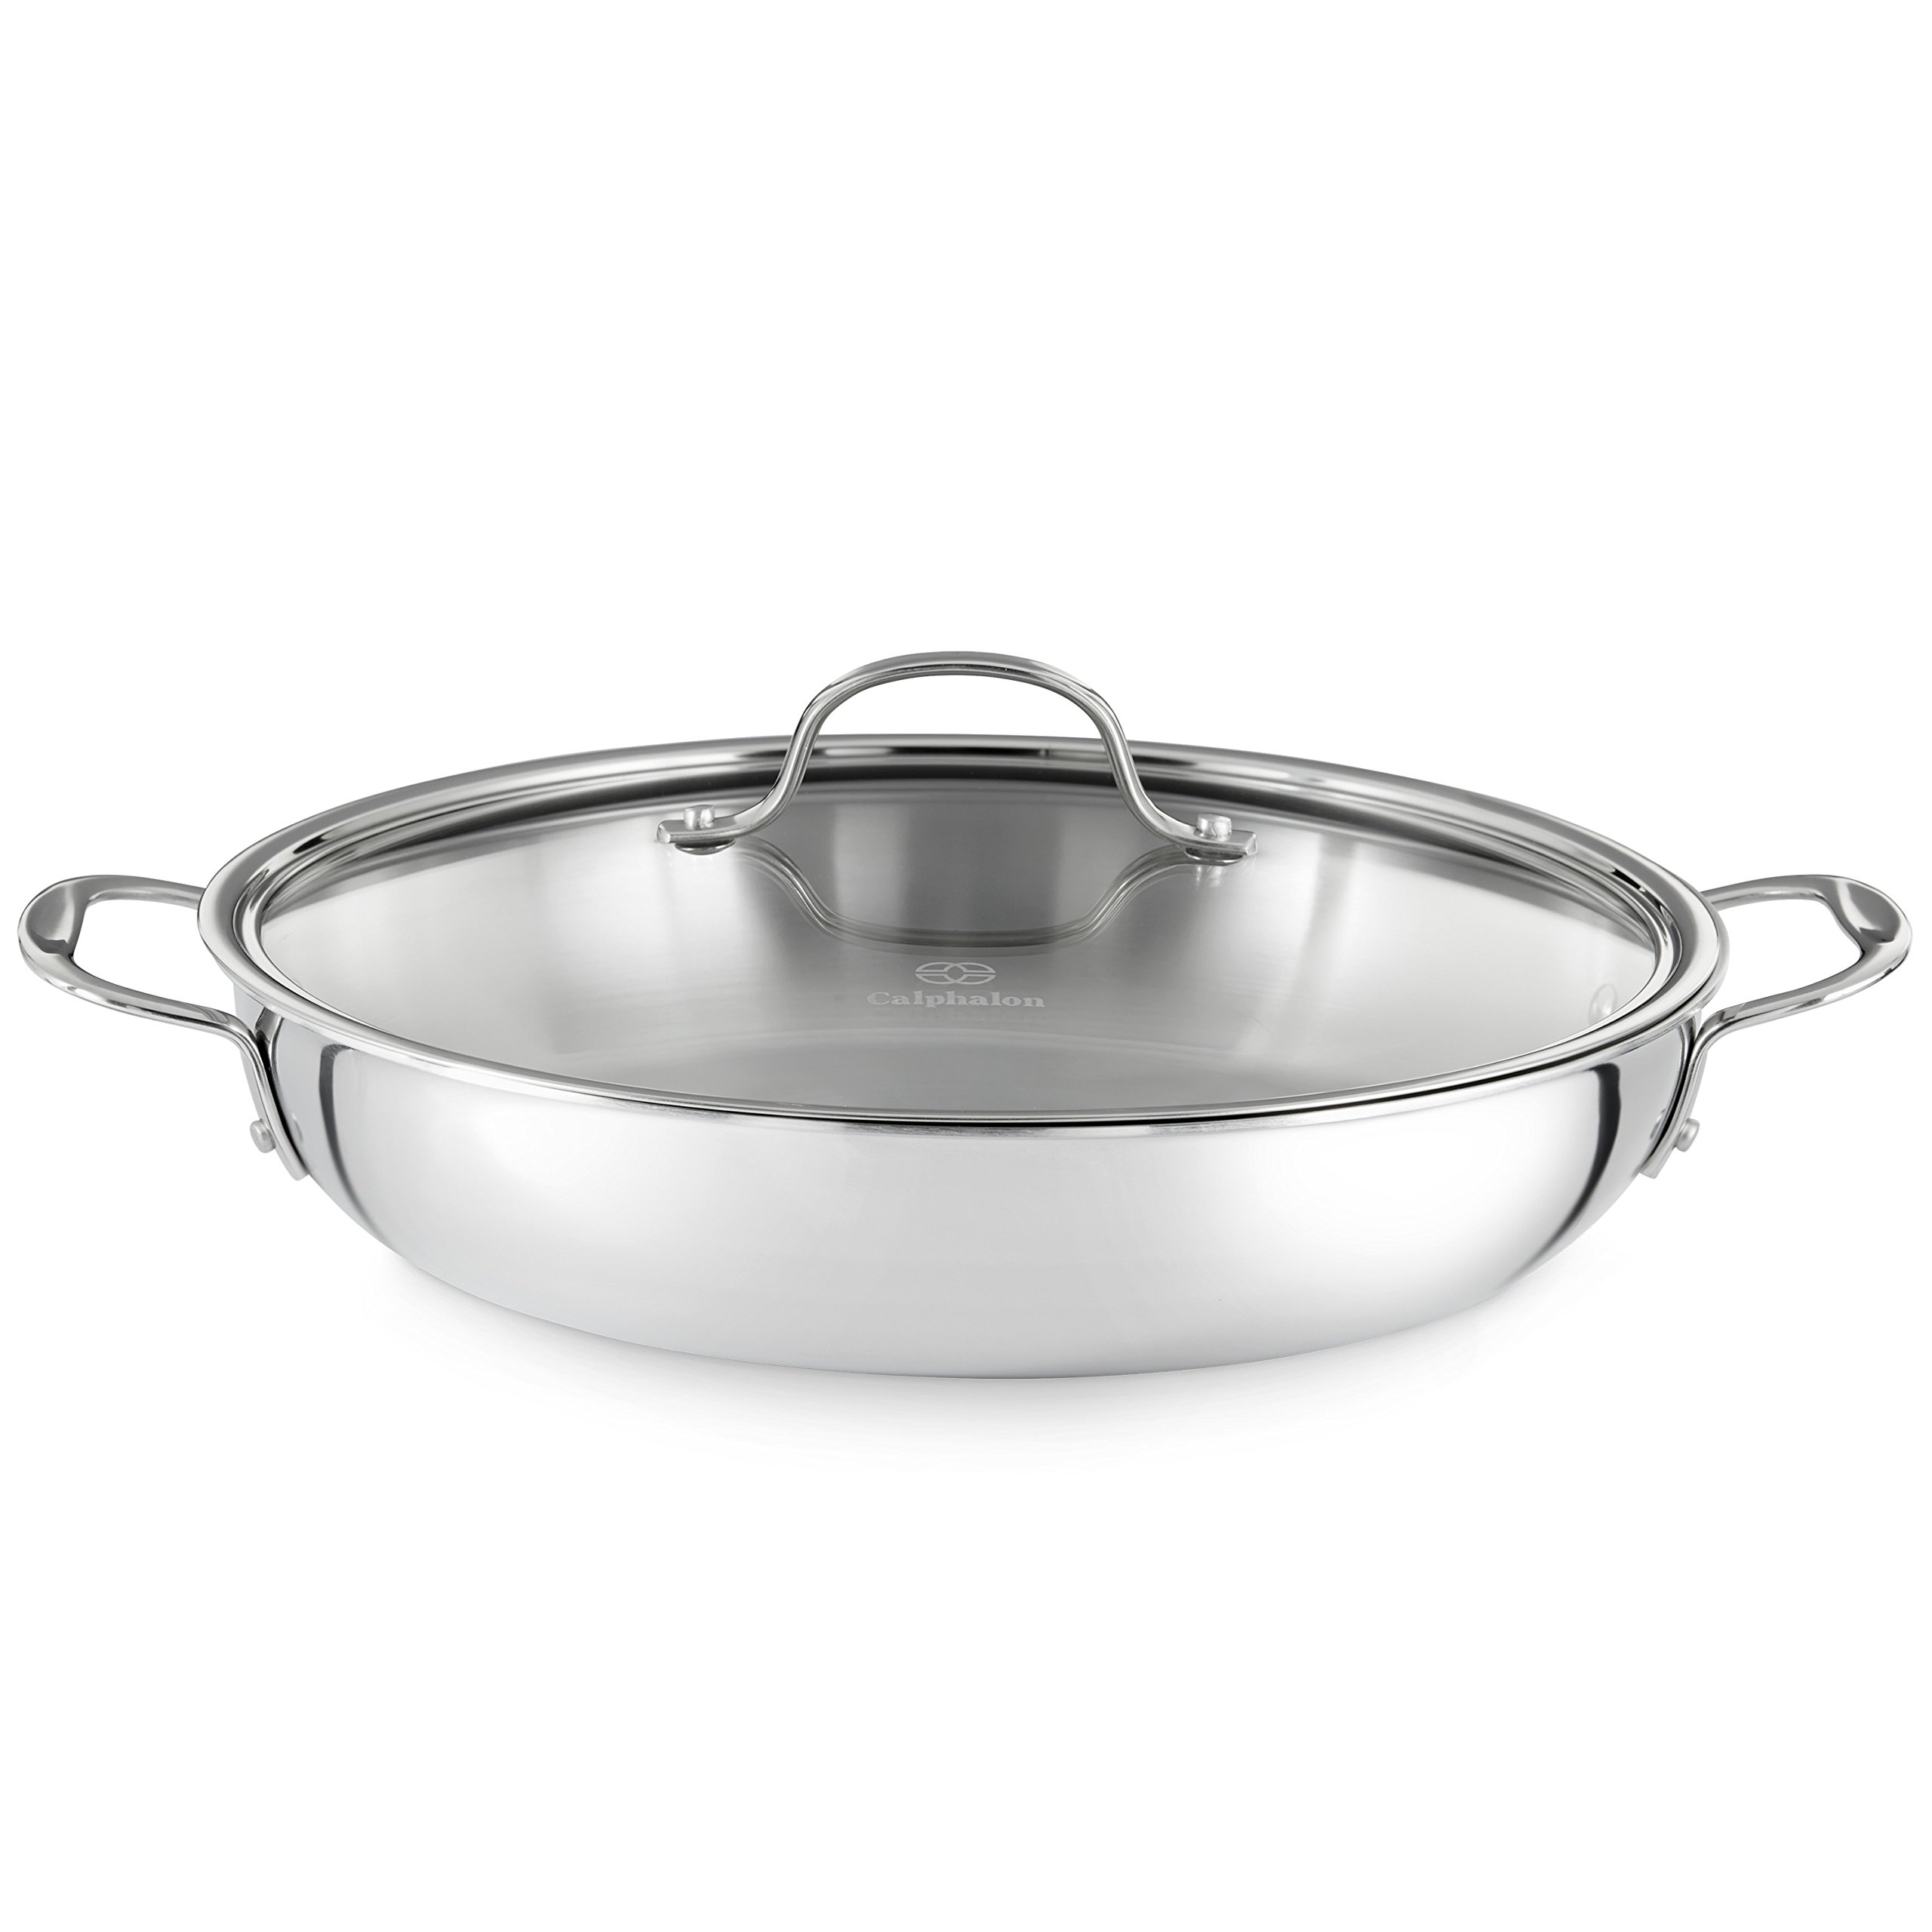 Calphalon Tri-Ply Stainless Steel Cookware, Everyday Pan, 12-inch